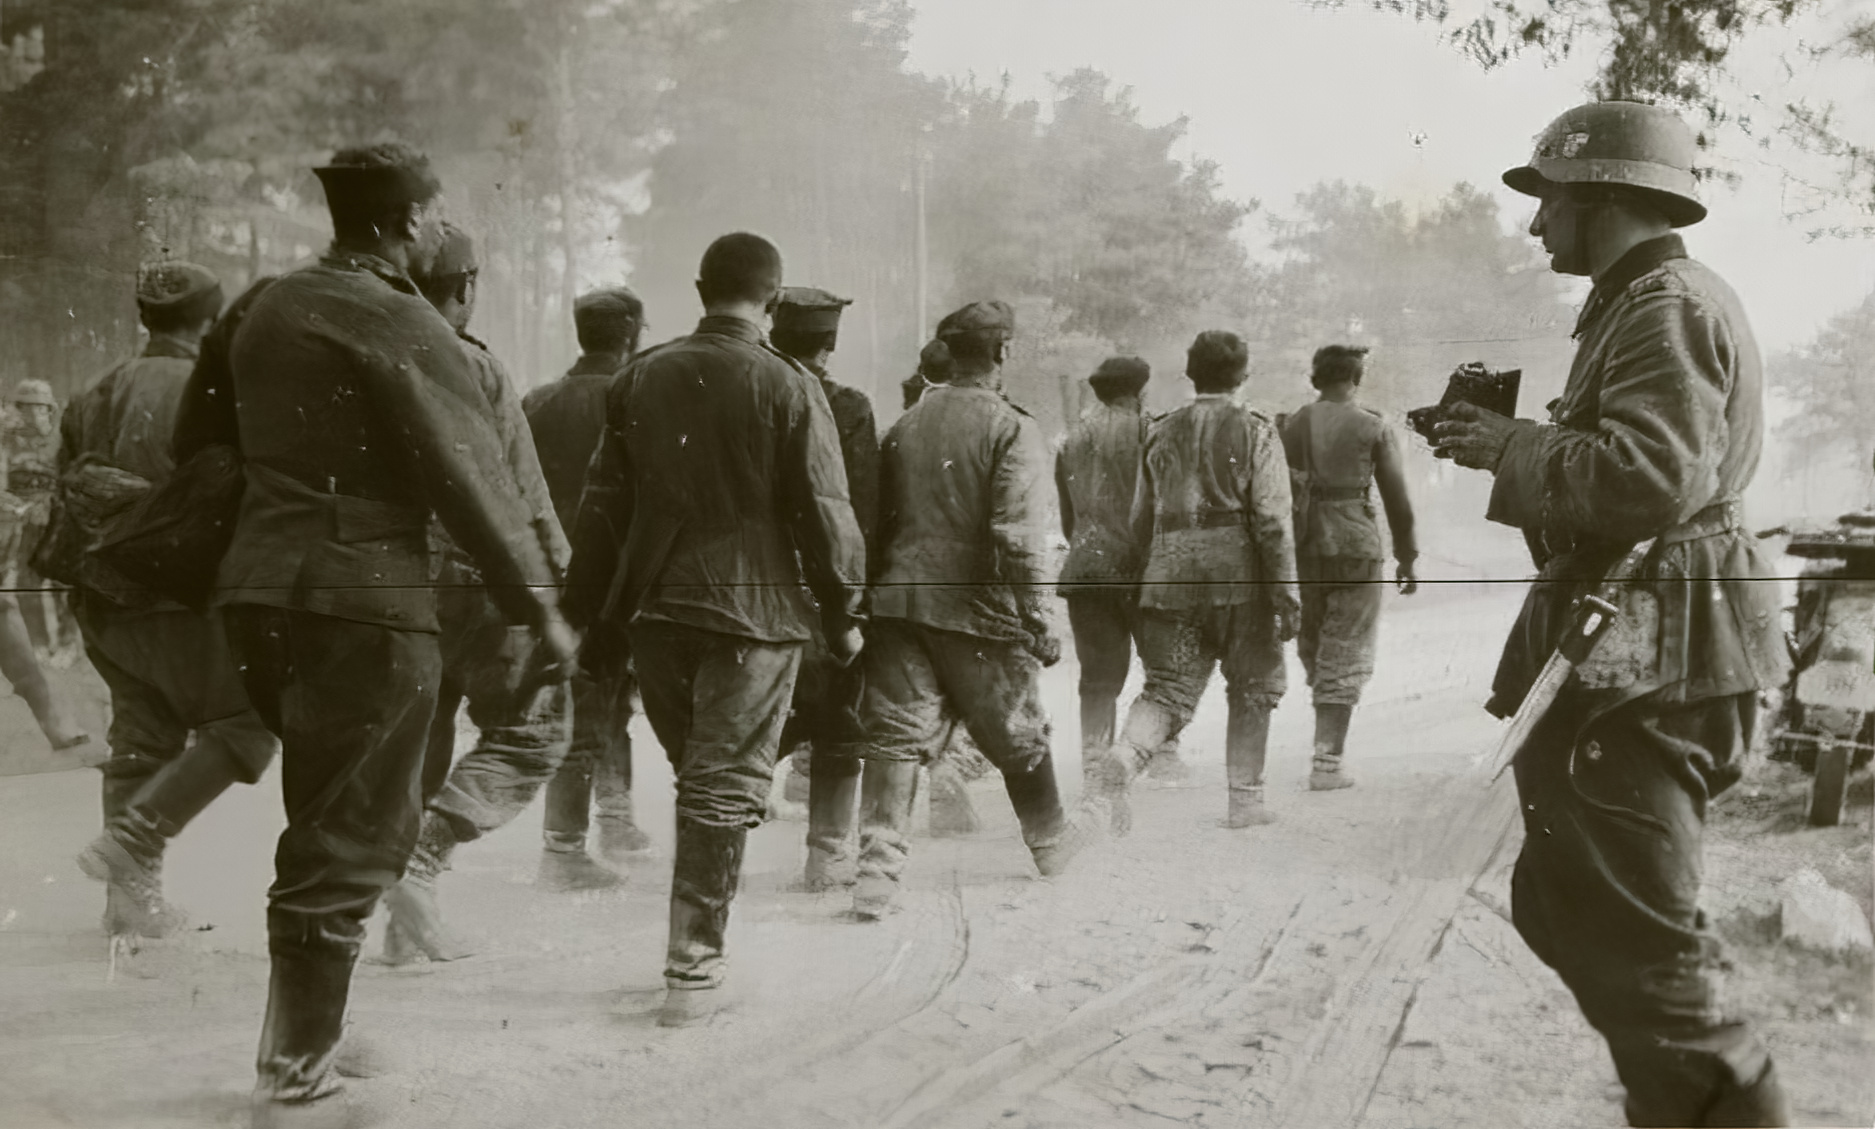 French soldiers being marched towards internment June 1940 ebay 01